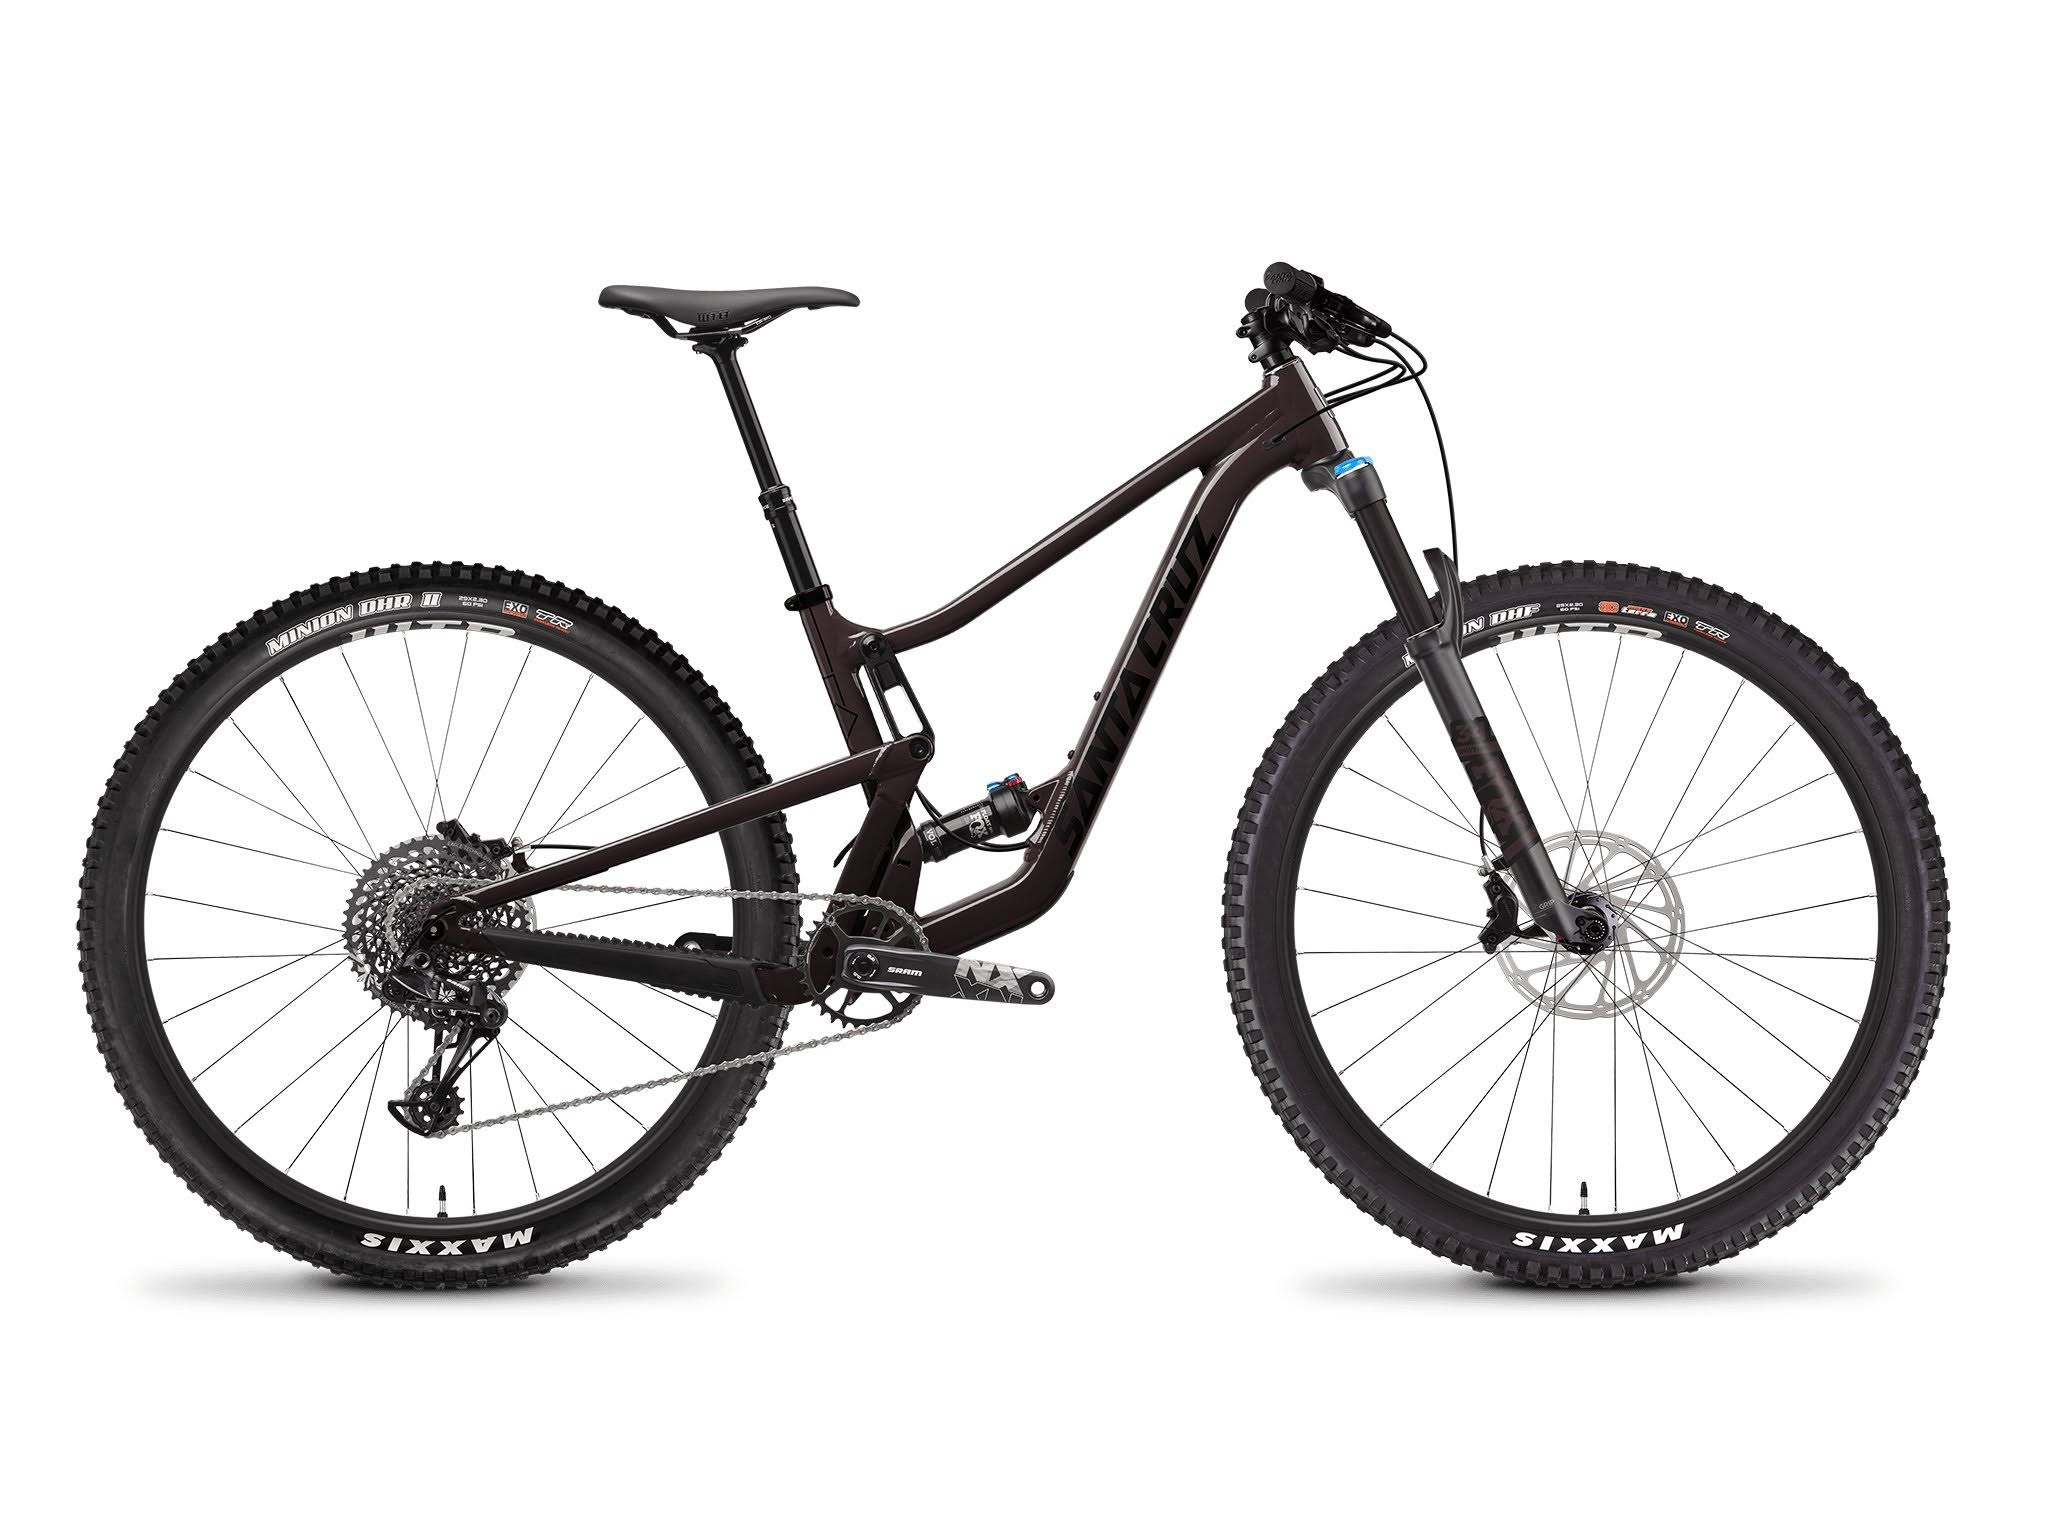 Santa Cruz Bicycles Tallboy A R Complete Mountain Bike 2020 - Medium